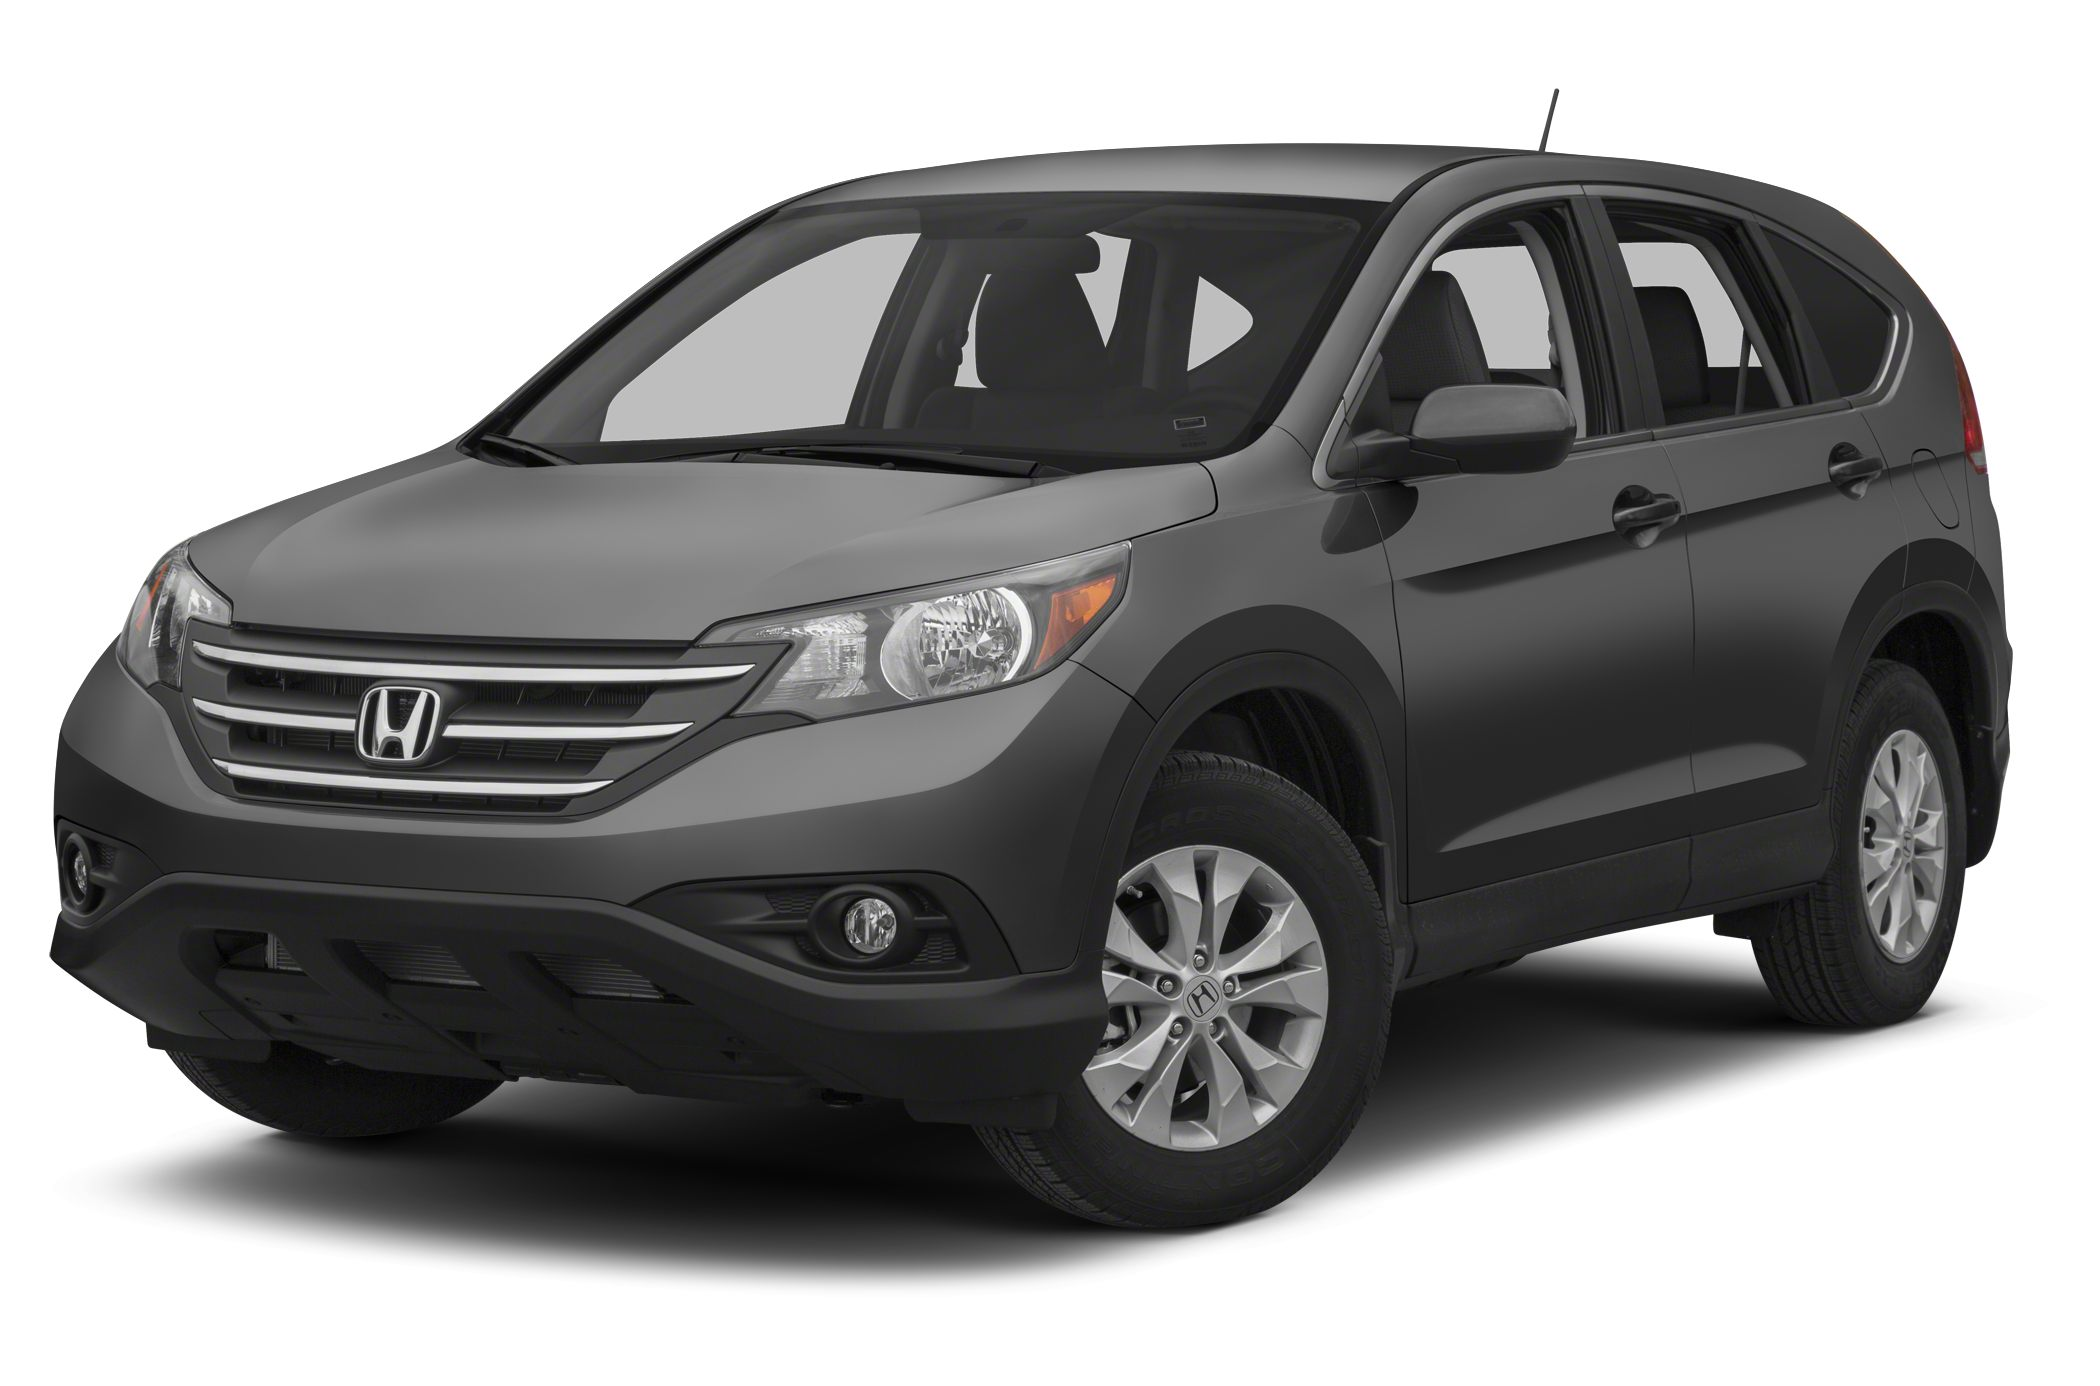 2013 Honda CR-V EX-L SUV for sale in South Hill for $24,879 with 8,020 miles.